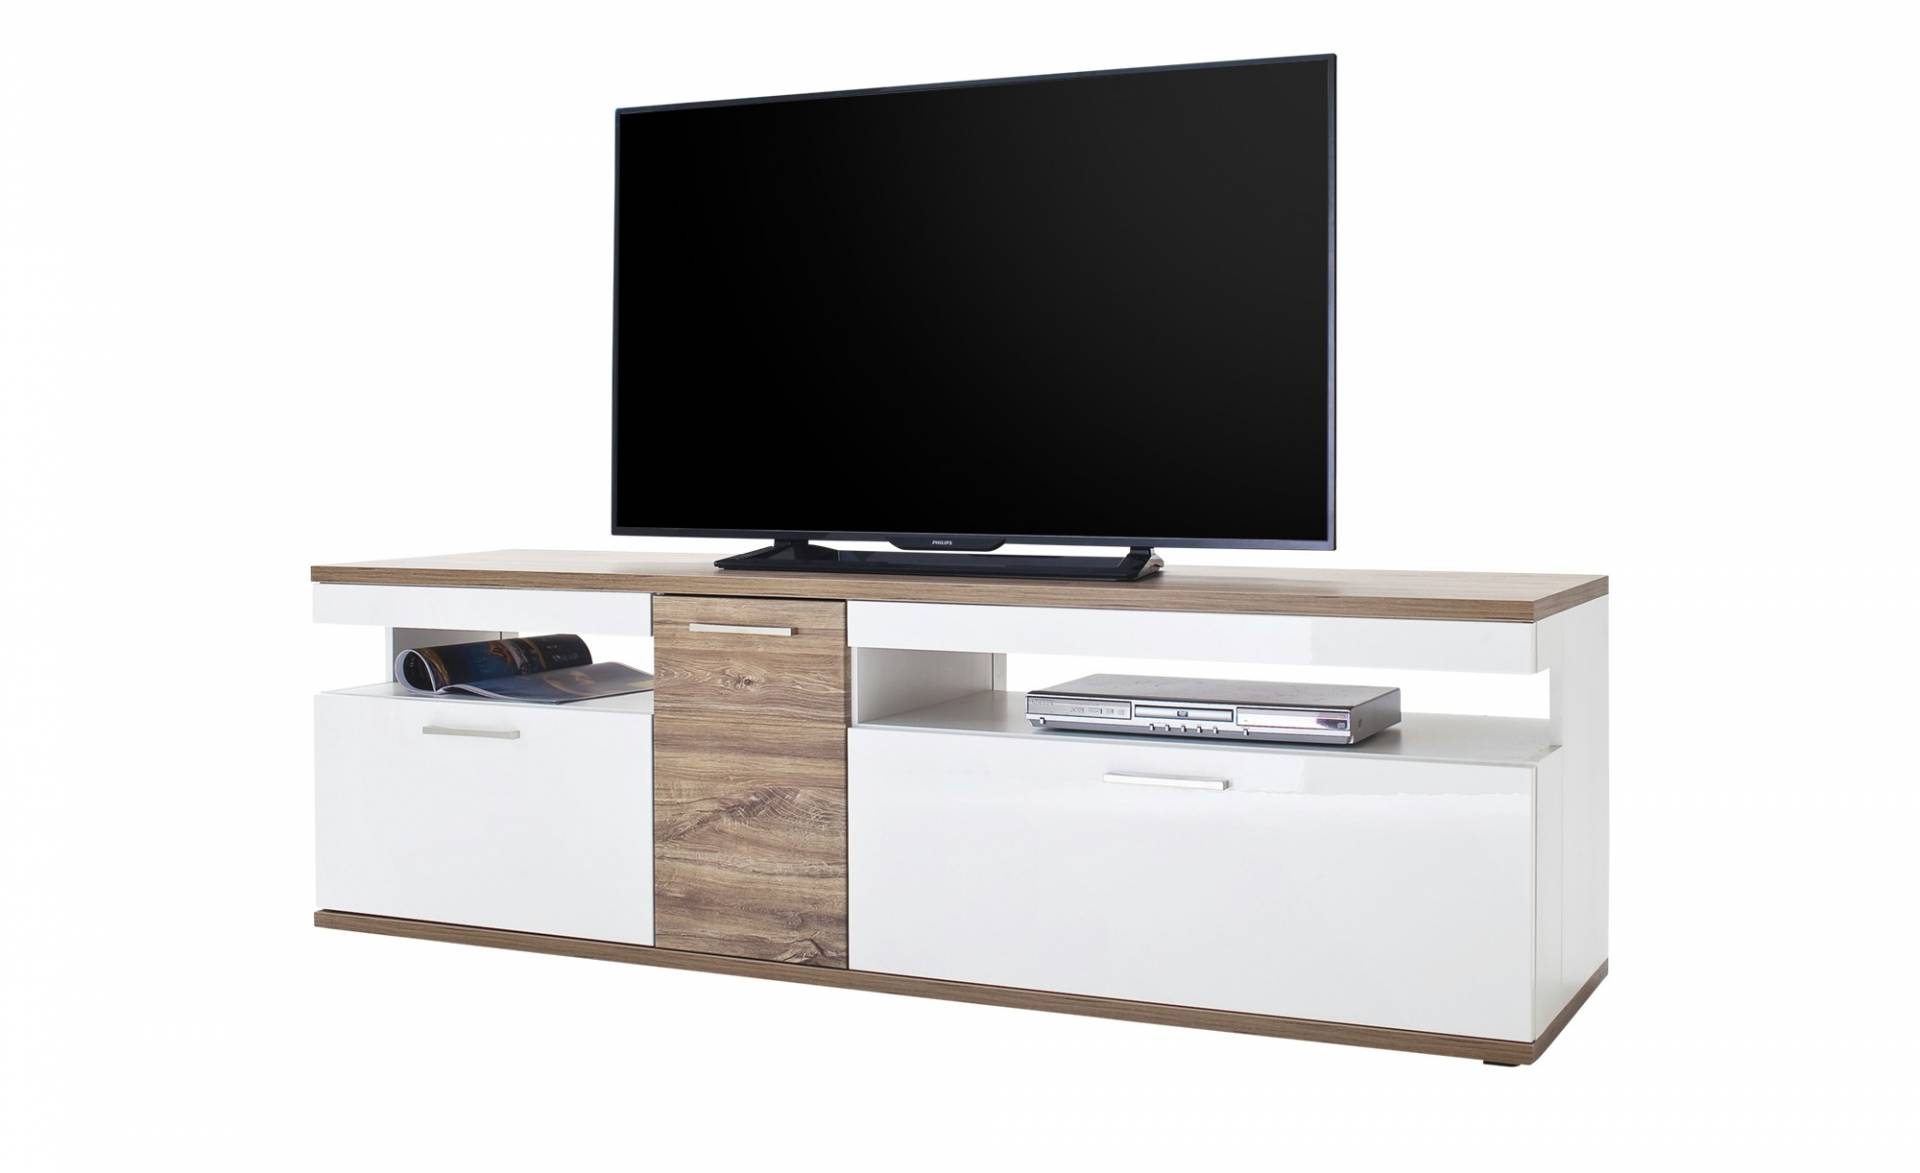 wei tv racks und weitere schr nke g nstig online kaufen bei m bel garten. Black Bedroom Furniture Sets. Home Design Ideas